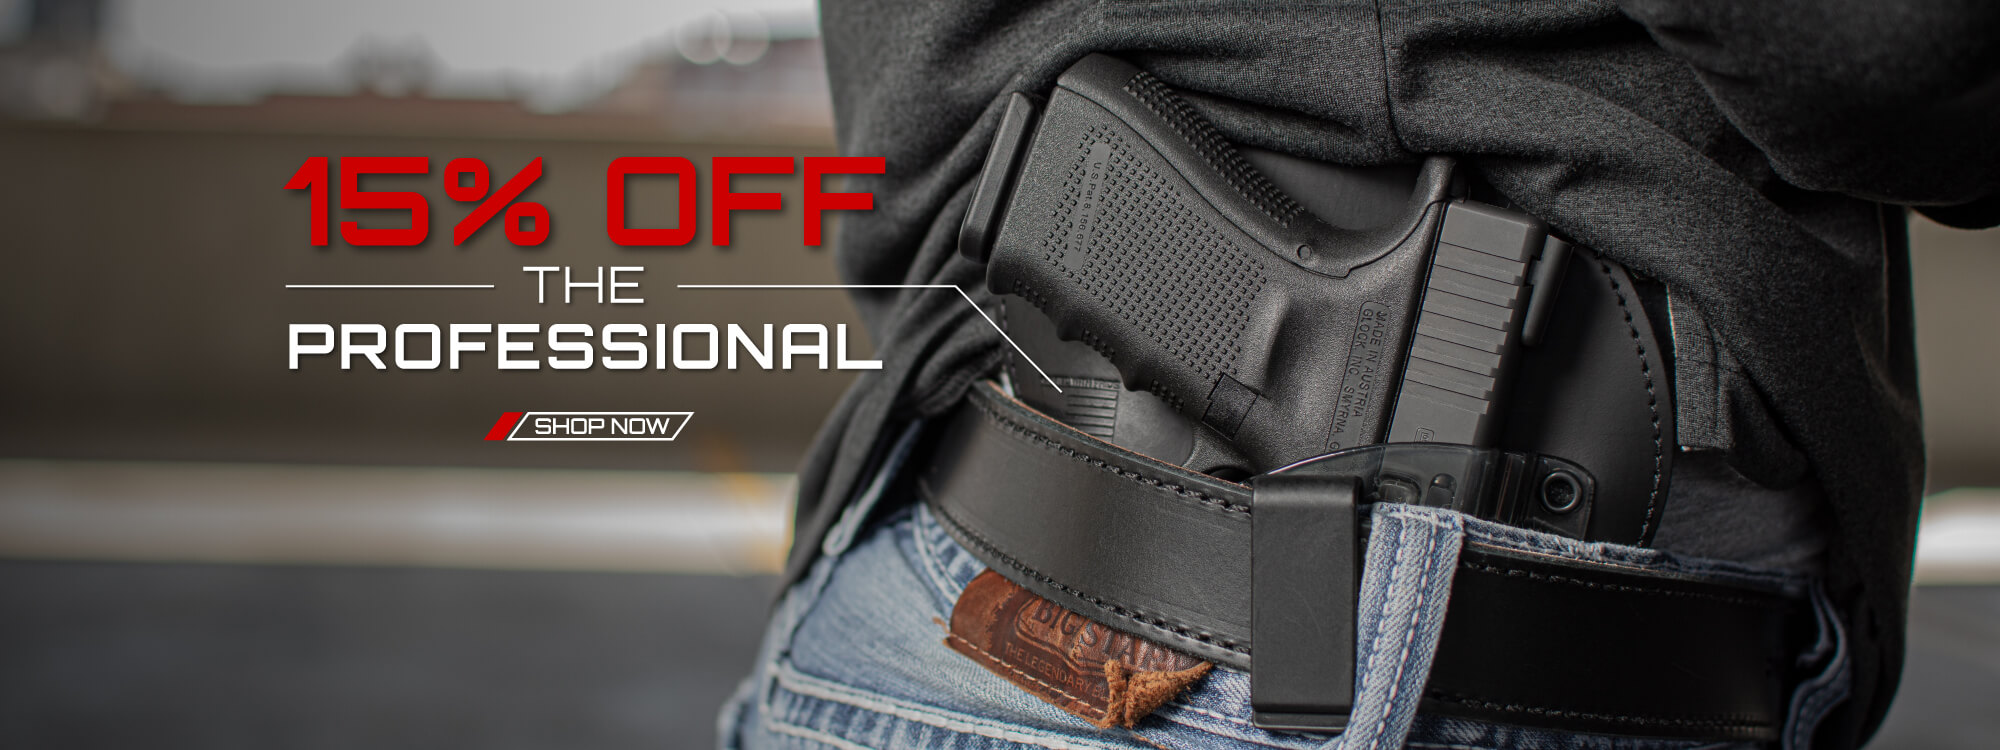 15% Off The Professional Holster